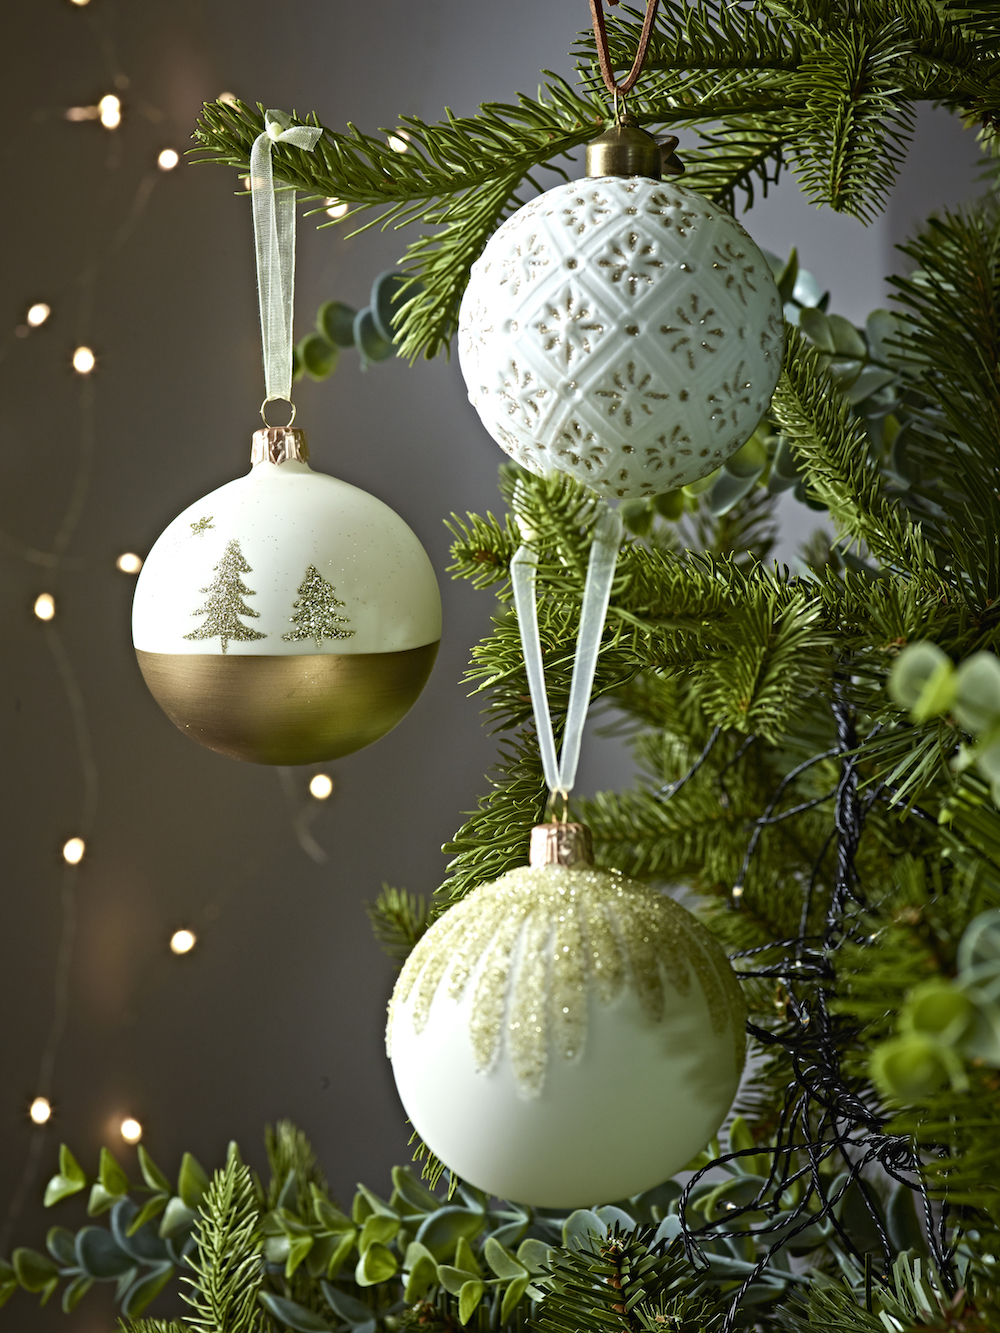 www.coxandcox.co.uk Six Gold Dipped Tree Baubles X-GLDTREE £16.50 Six Textured White Baubles X-TEXTWHT £16.50 Six Gold & Cream Beaded Baubles X-BEADBAUB £18.50.jpg